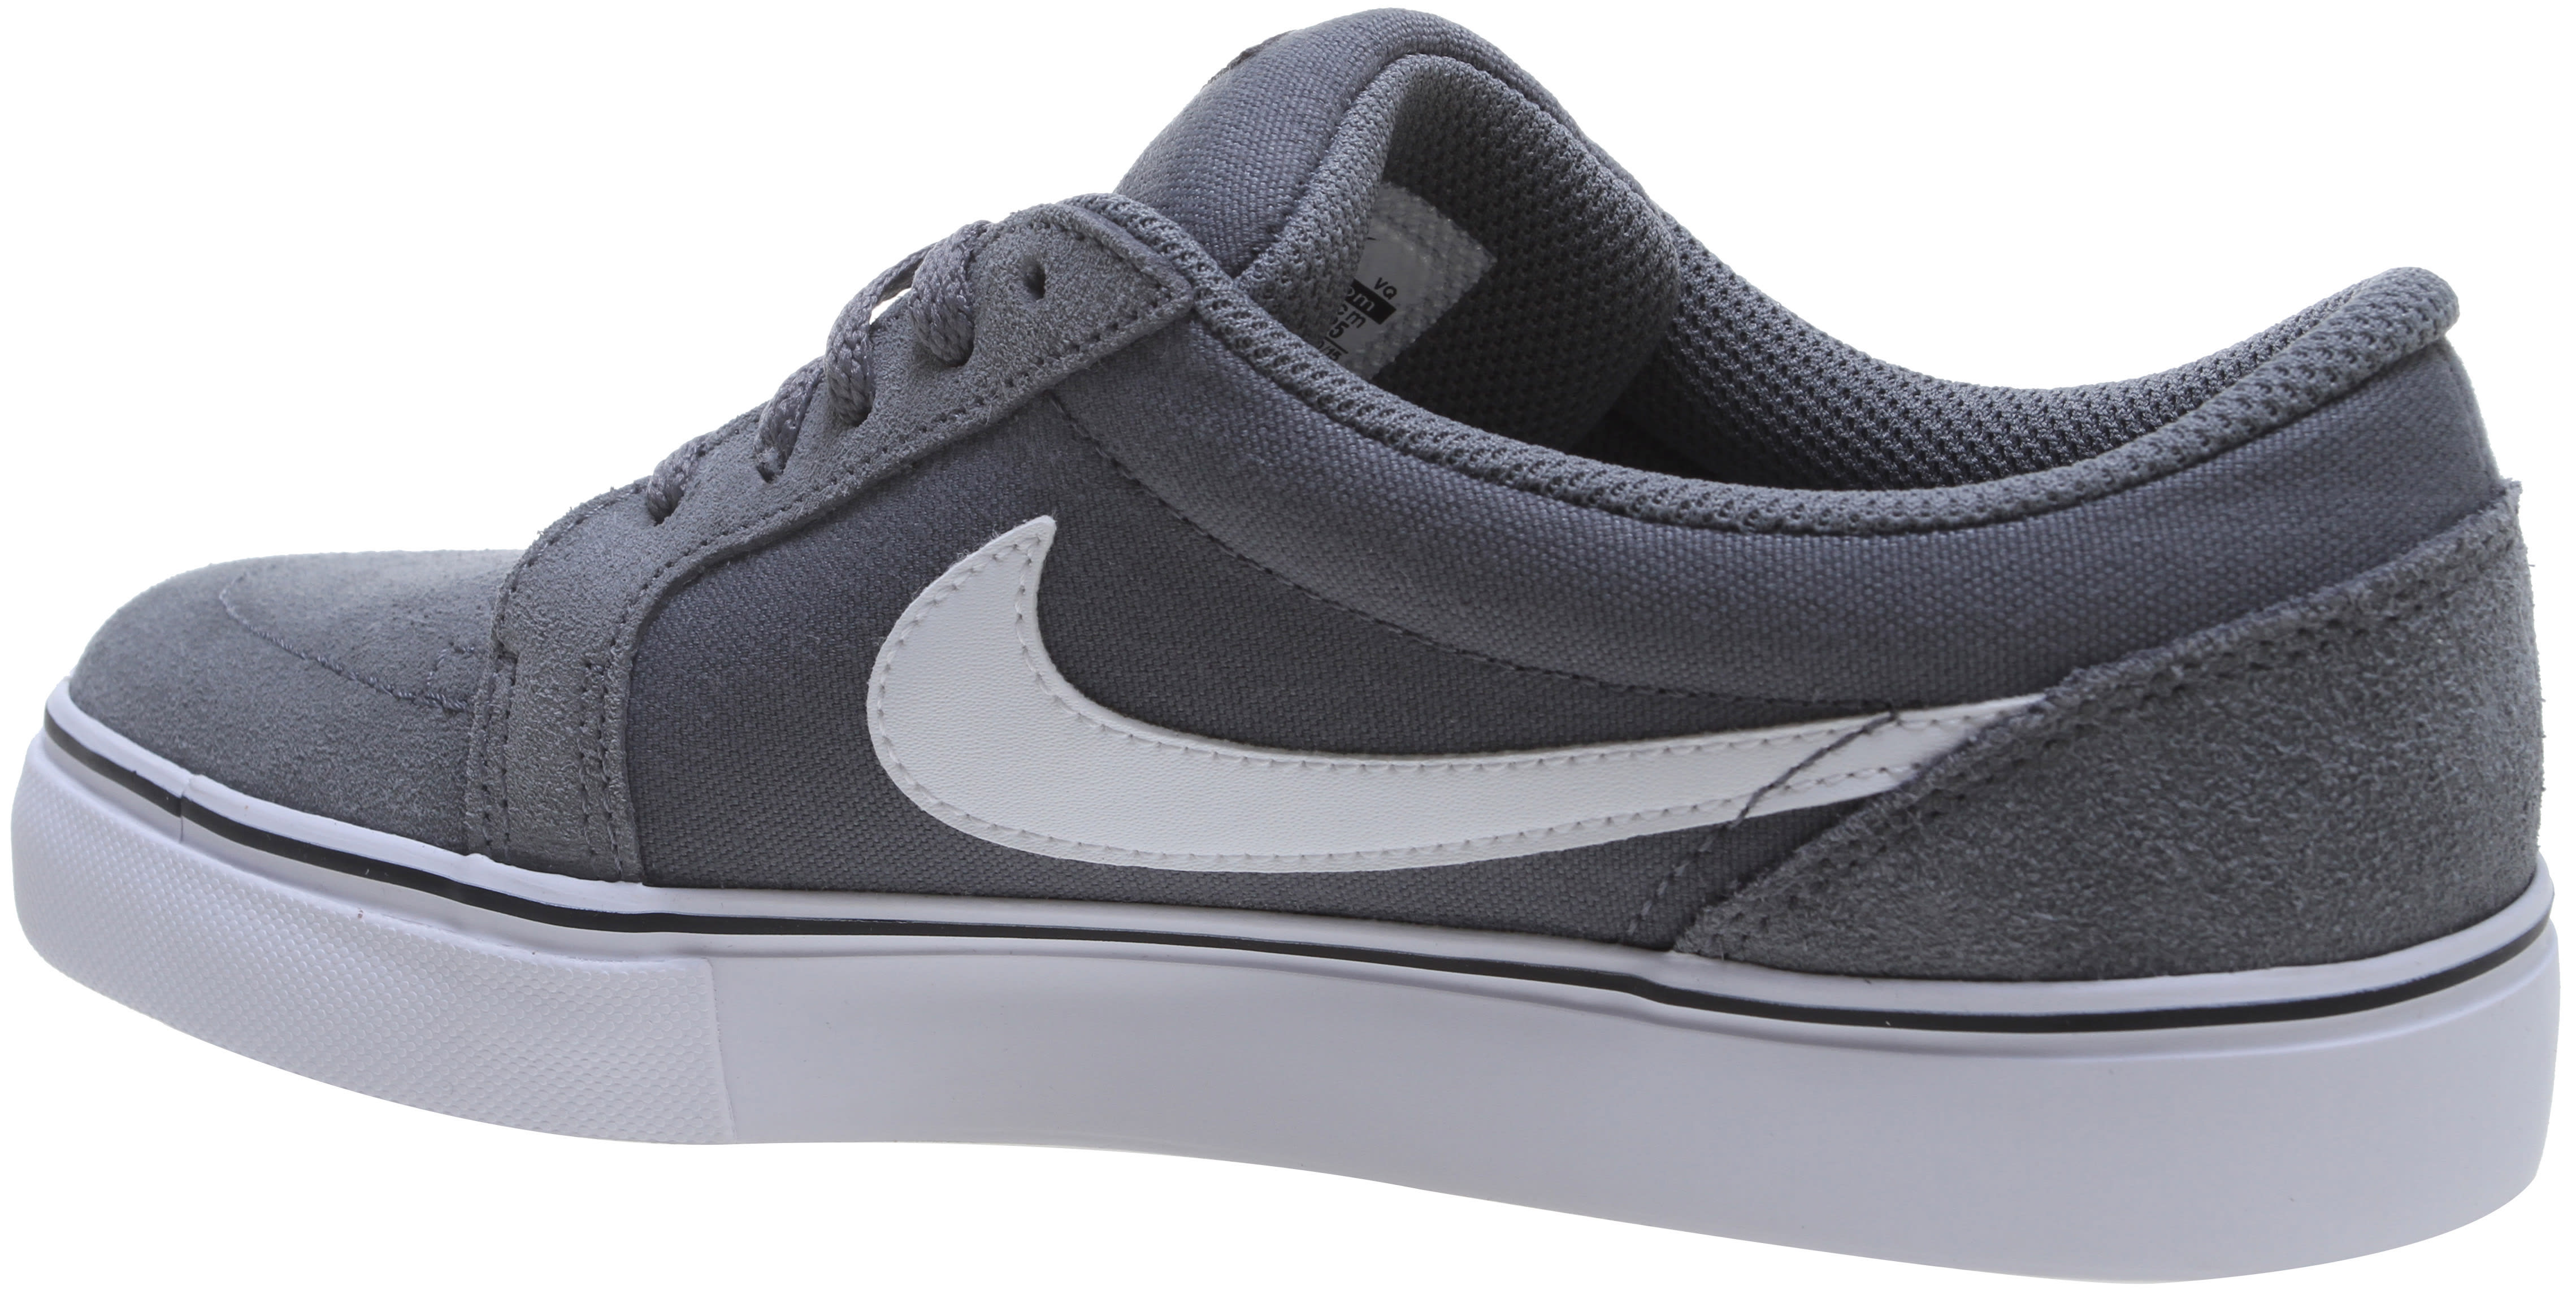 Nike SB Satire II (GS) Skate Shoes - thumbnail 3 029f1b7fcb77f